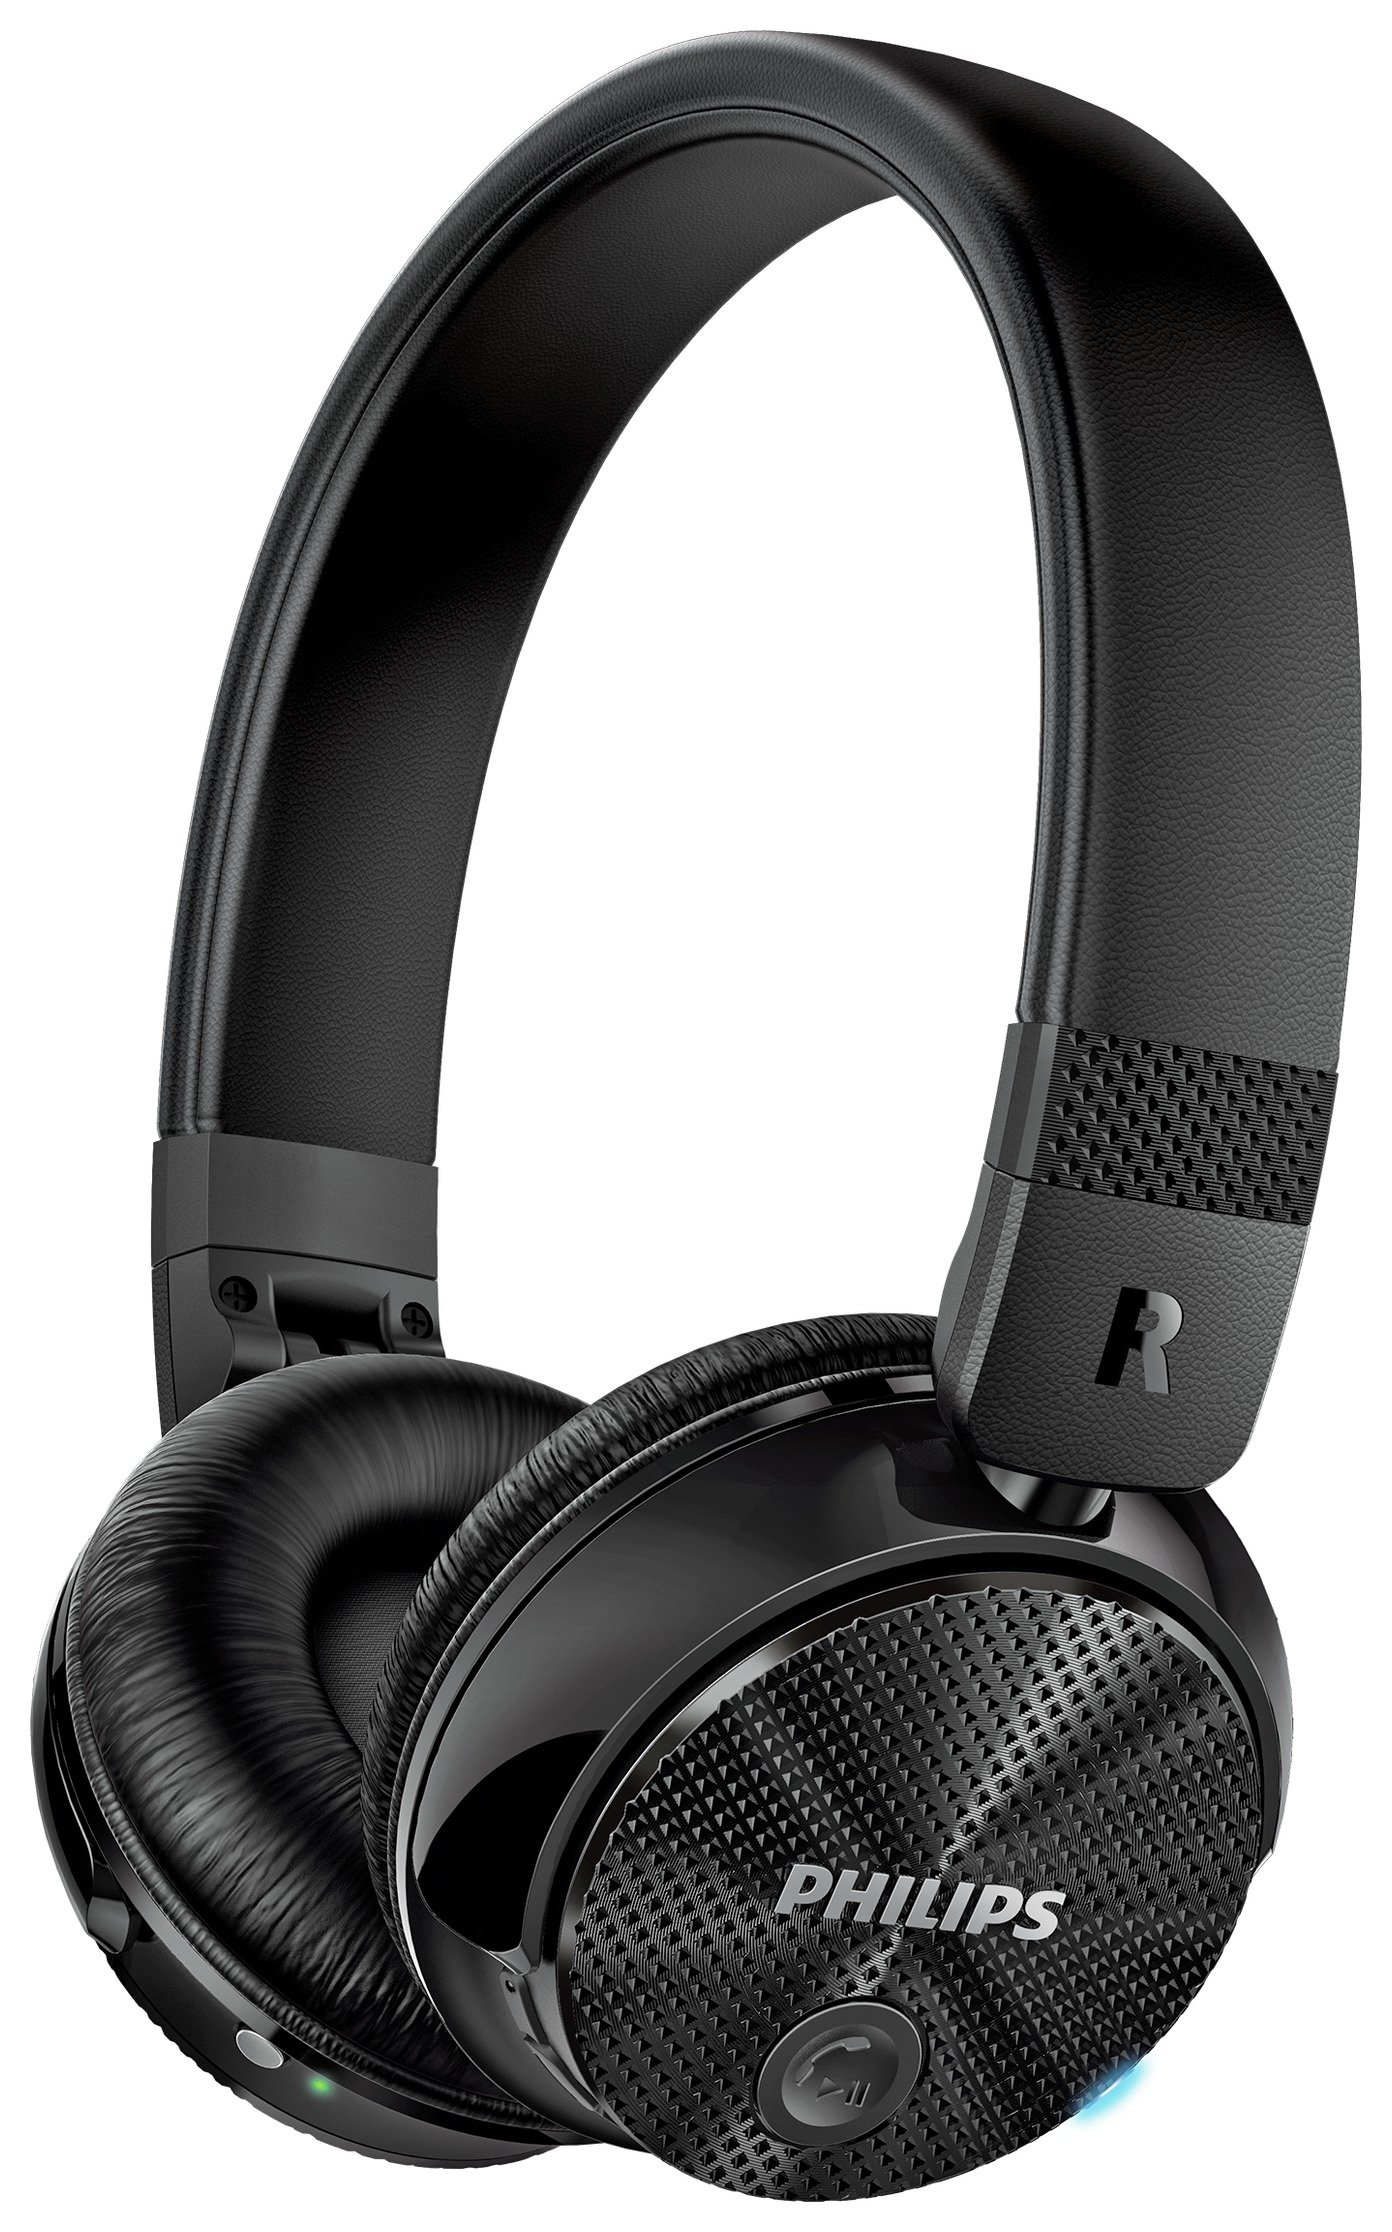 Philips Philips - Wireless Noise-Cancelling Bluetooth Headphones